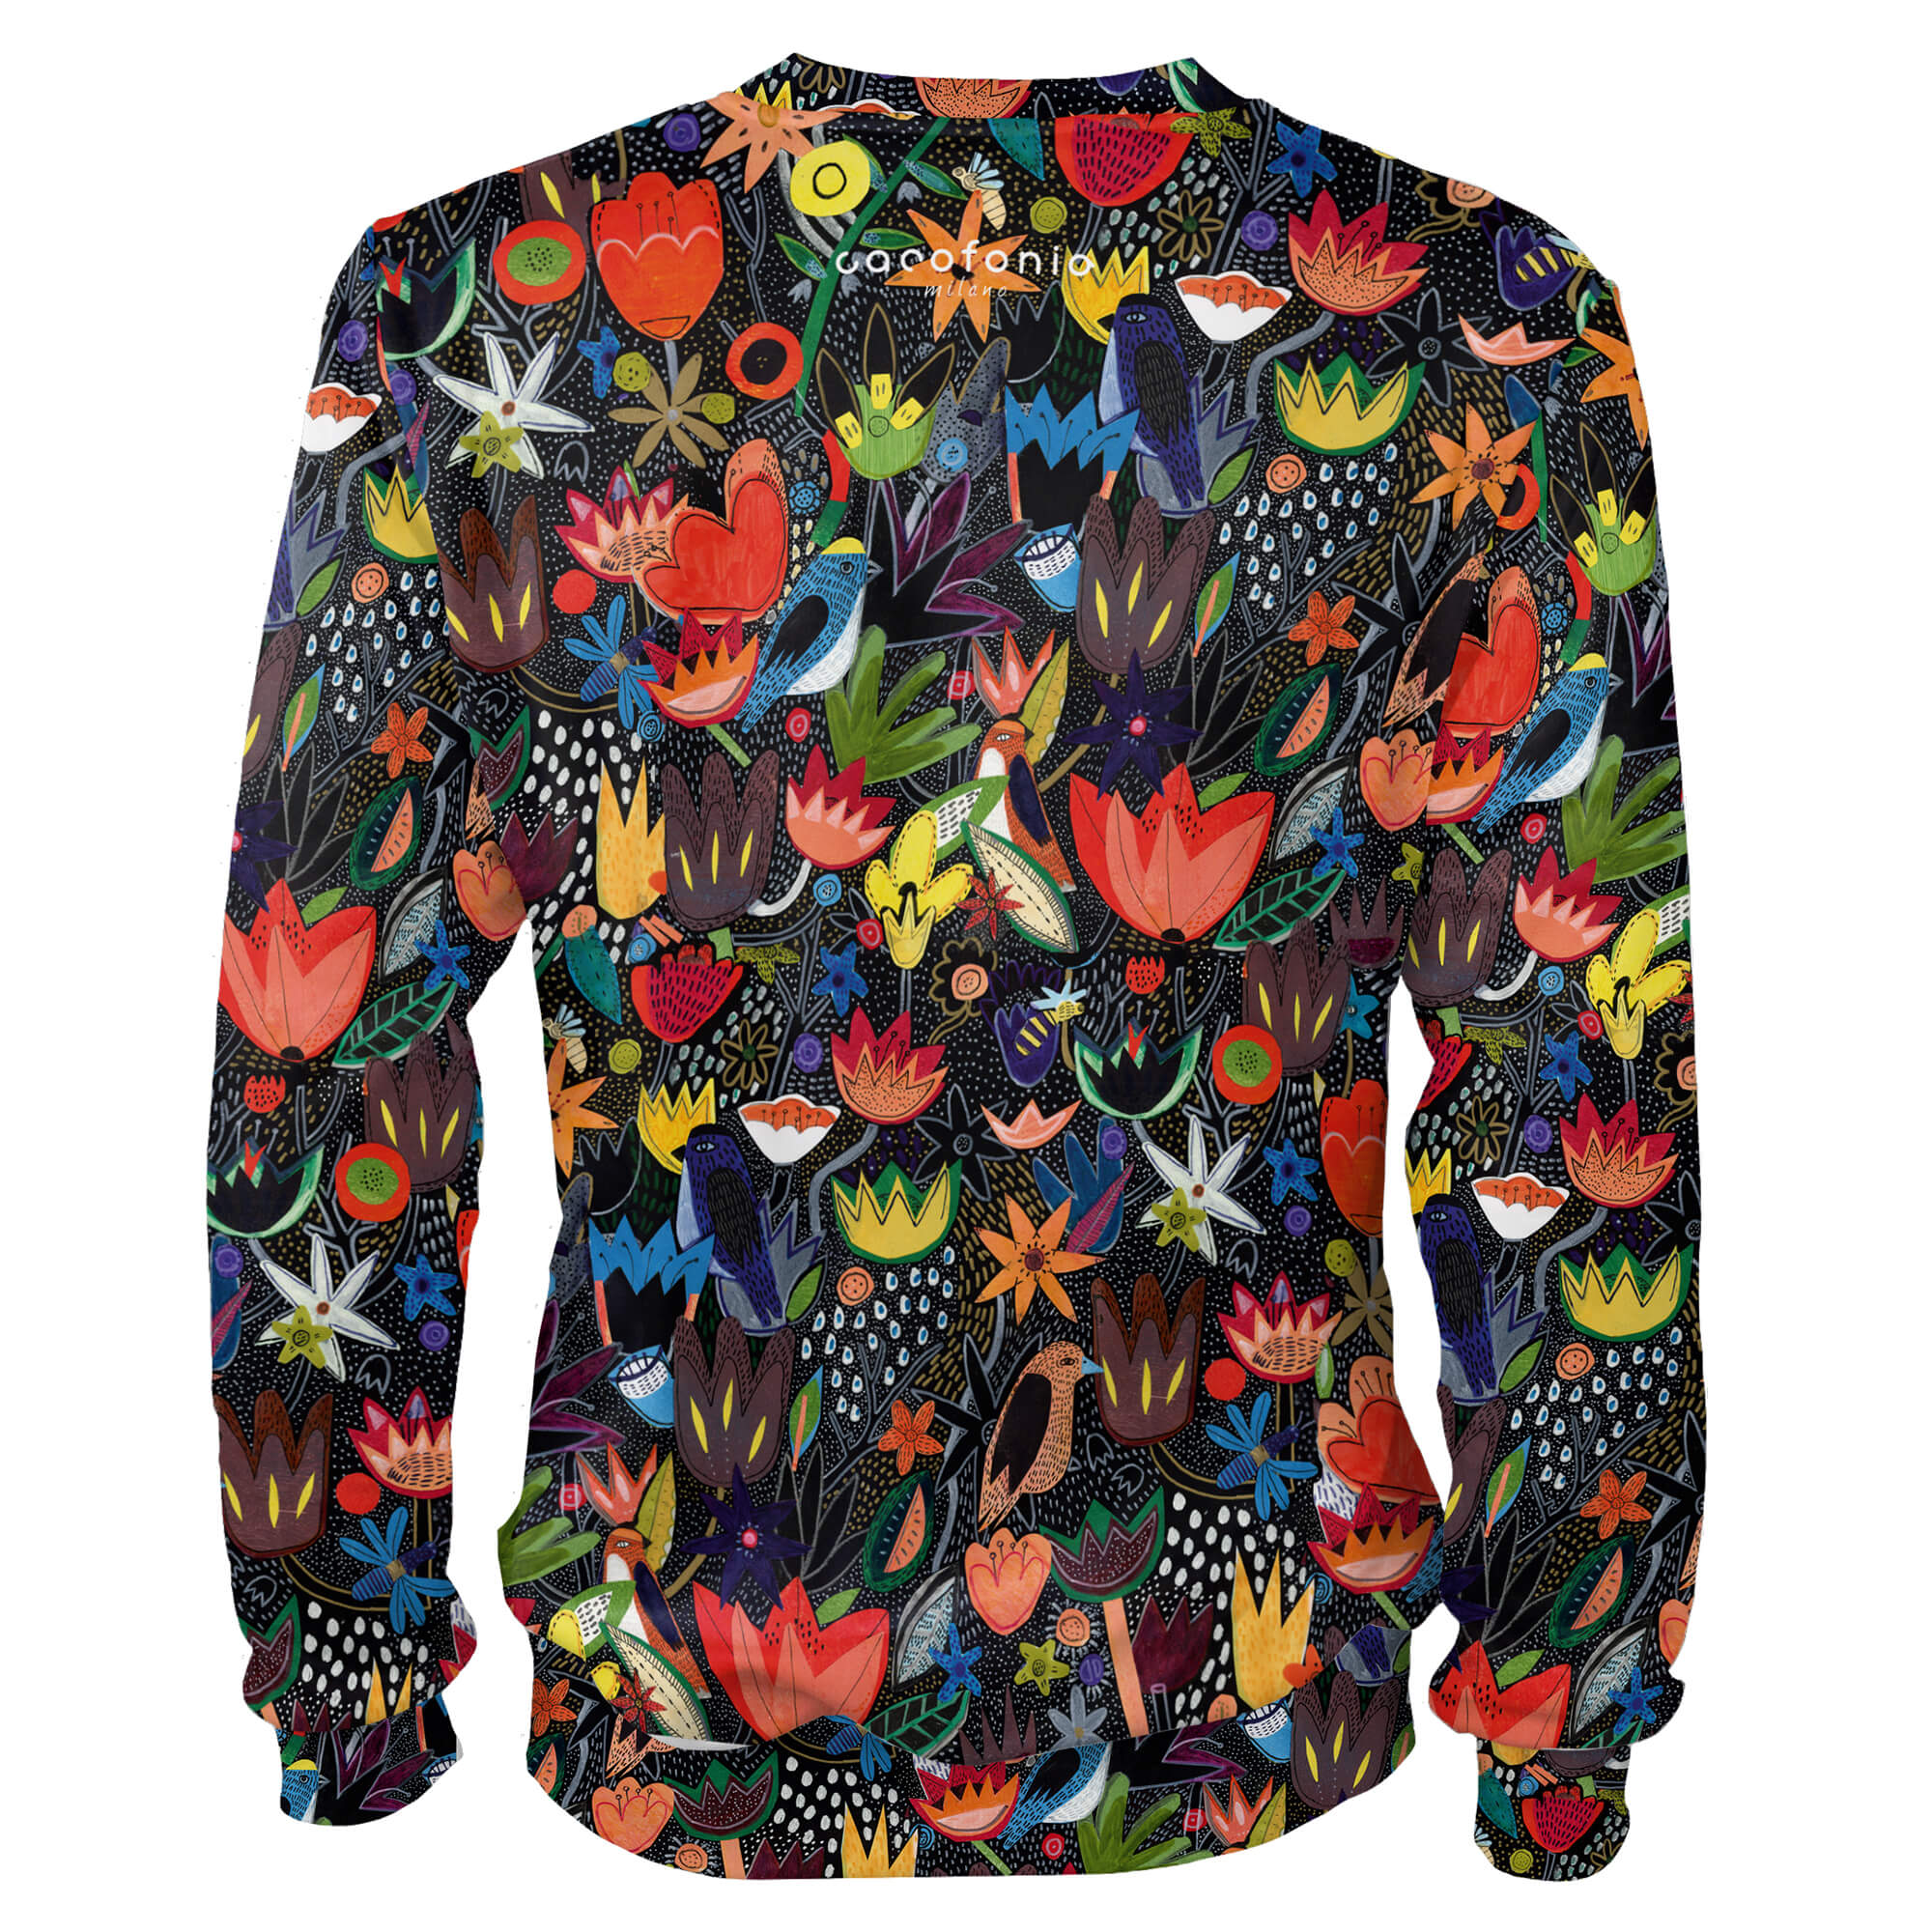 Colorful jungle_bluza_prosta Cacofonia Milano